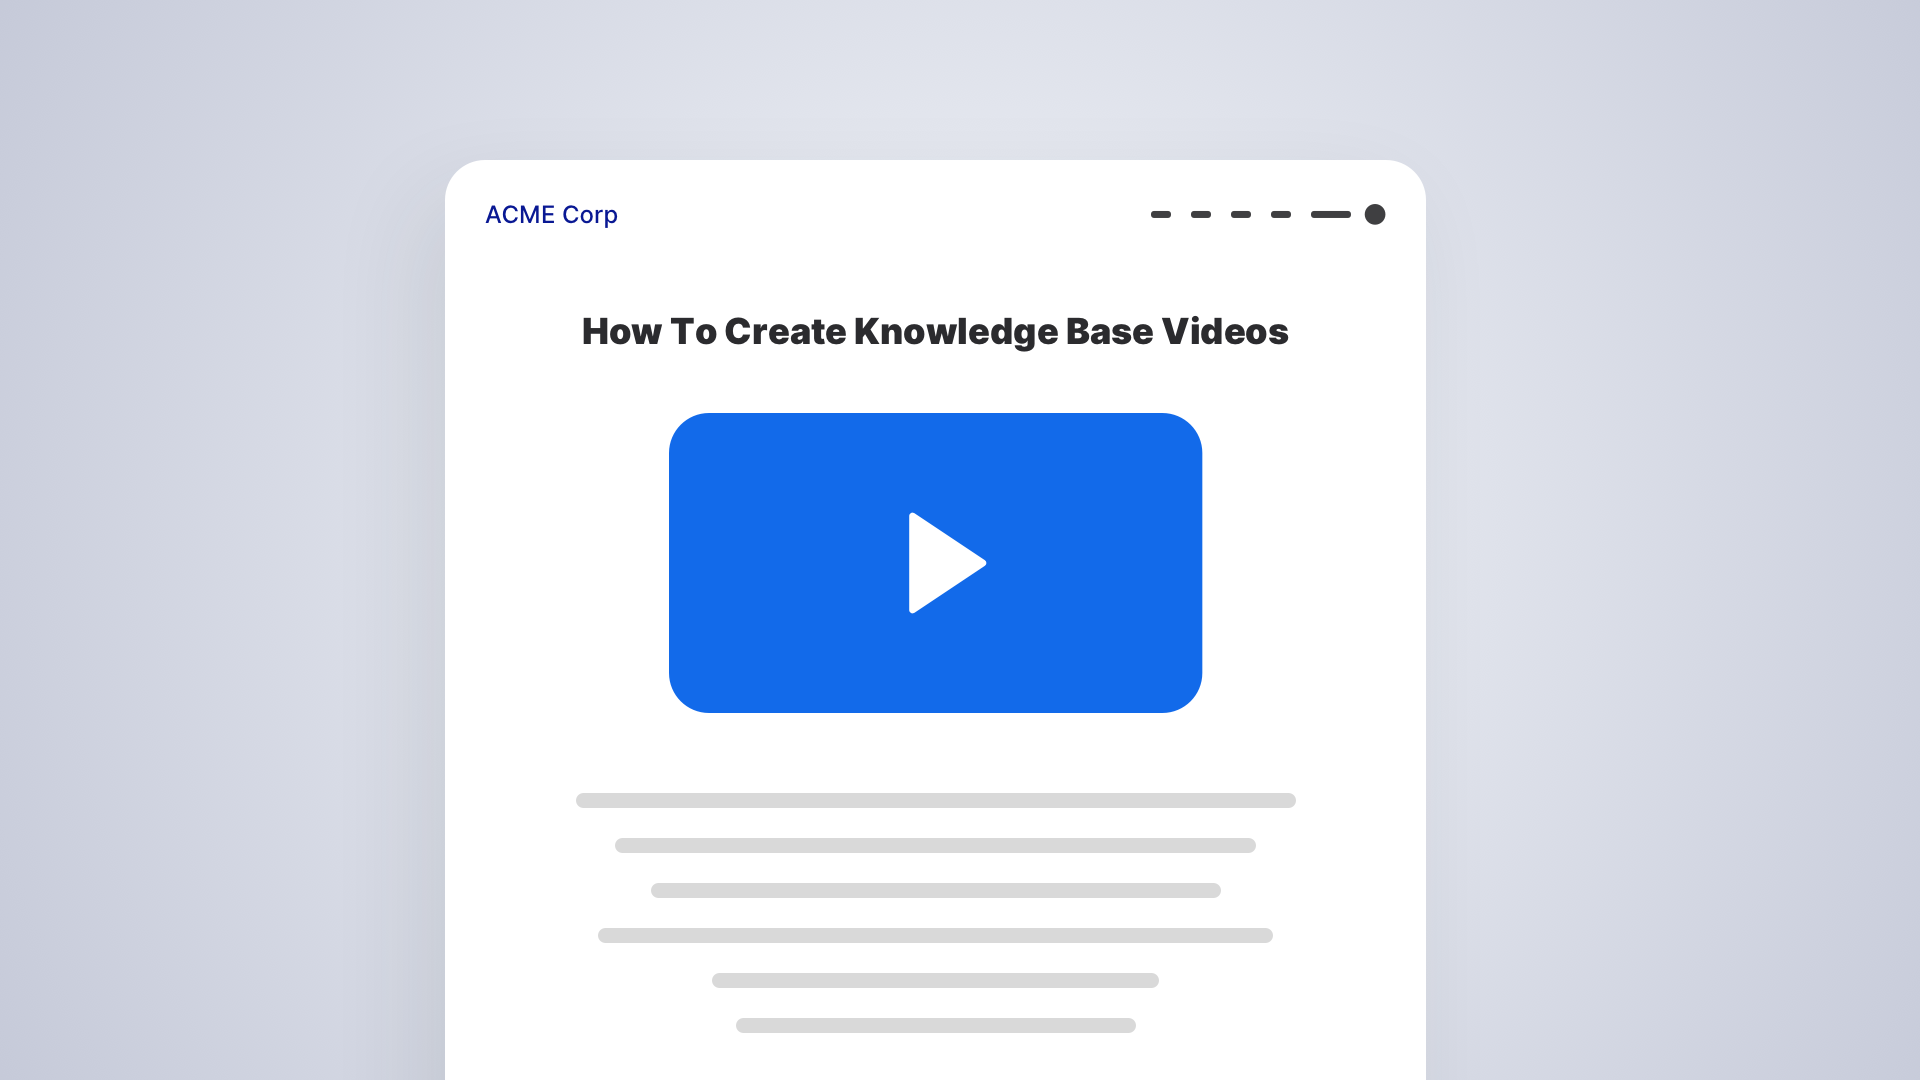 Creating Knowledge Base Videos: Create Videos in 6 Simple Steps